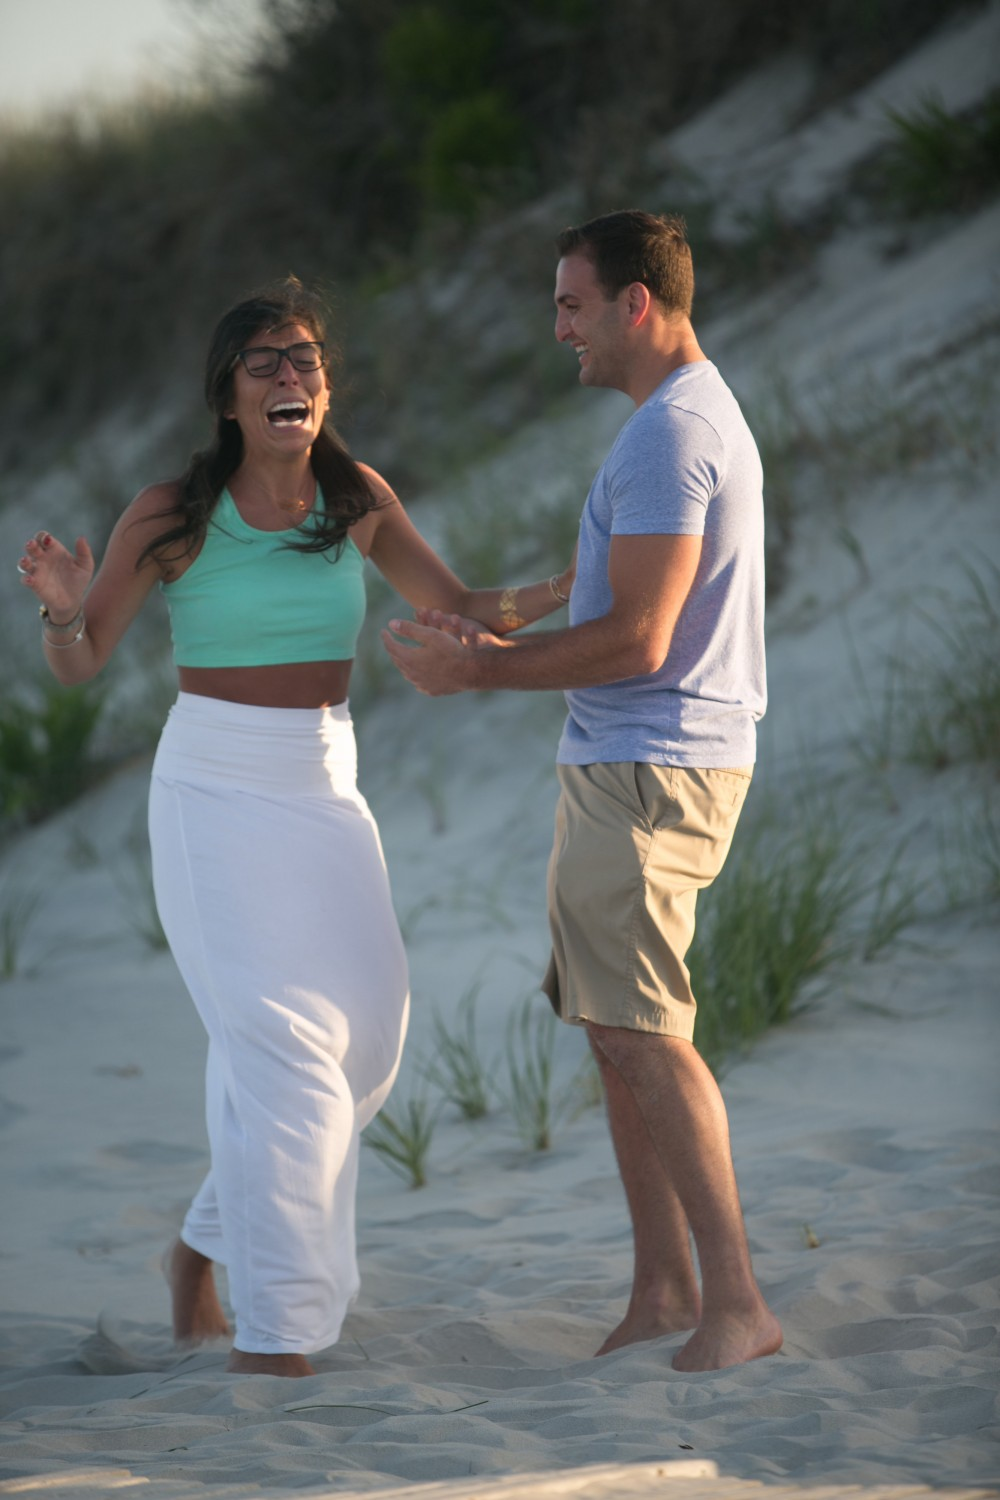 Image 15 of This Girl's Proposal Reaction is The Best We've Ever Seen.